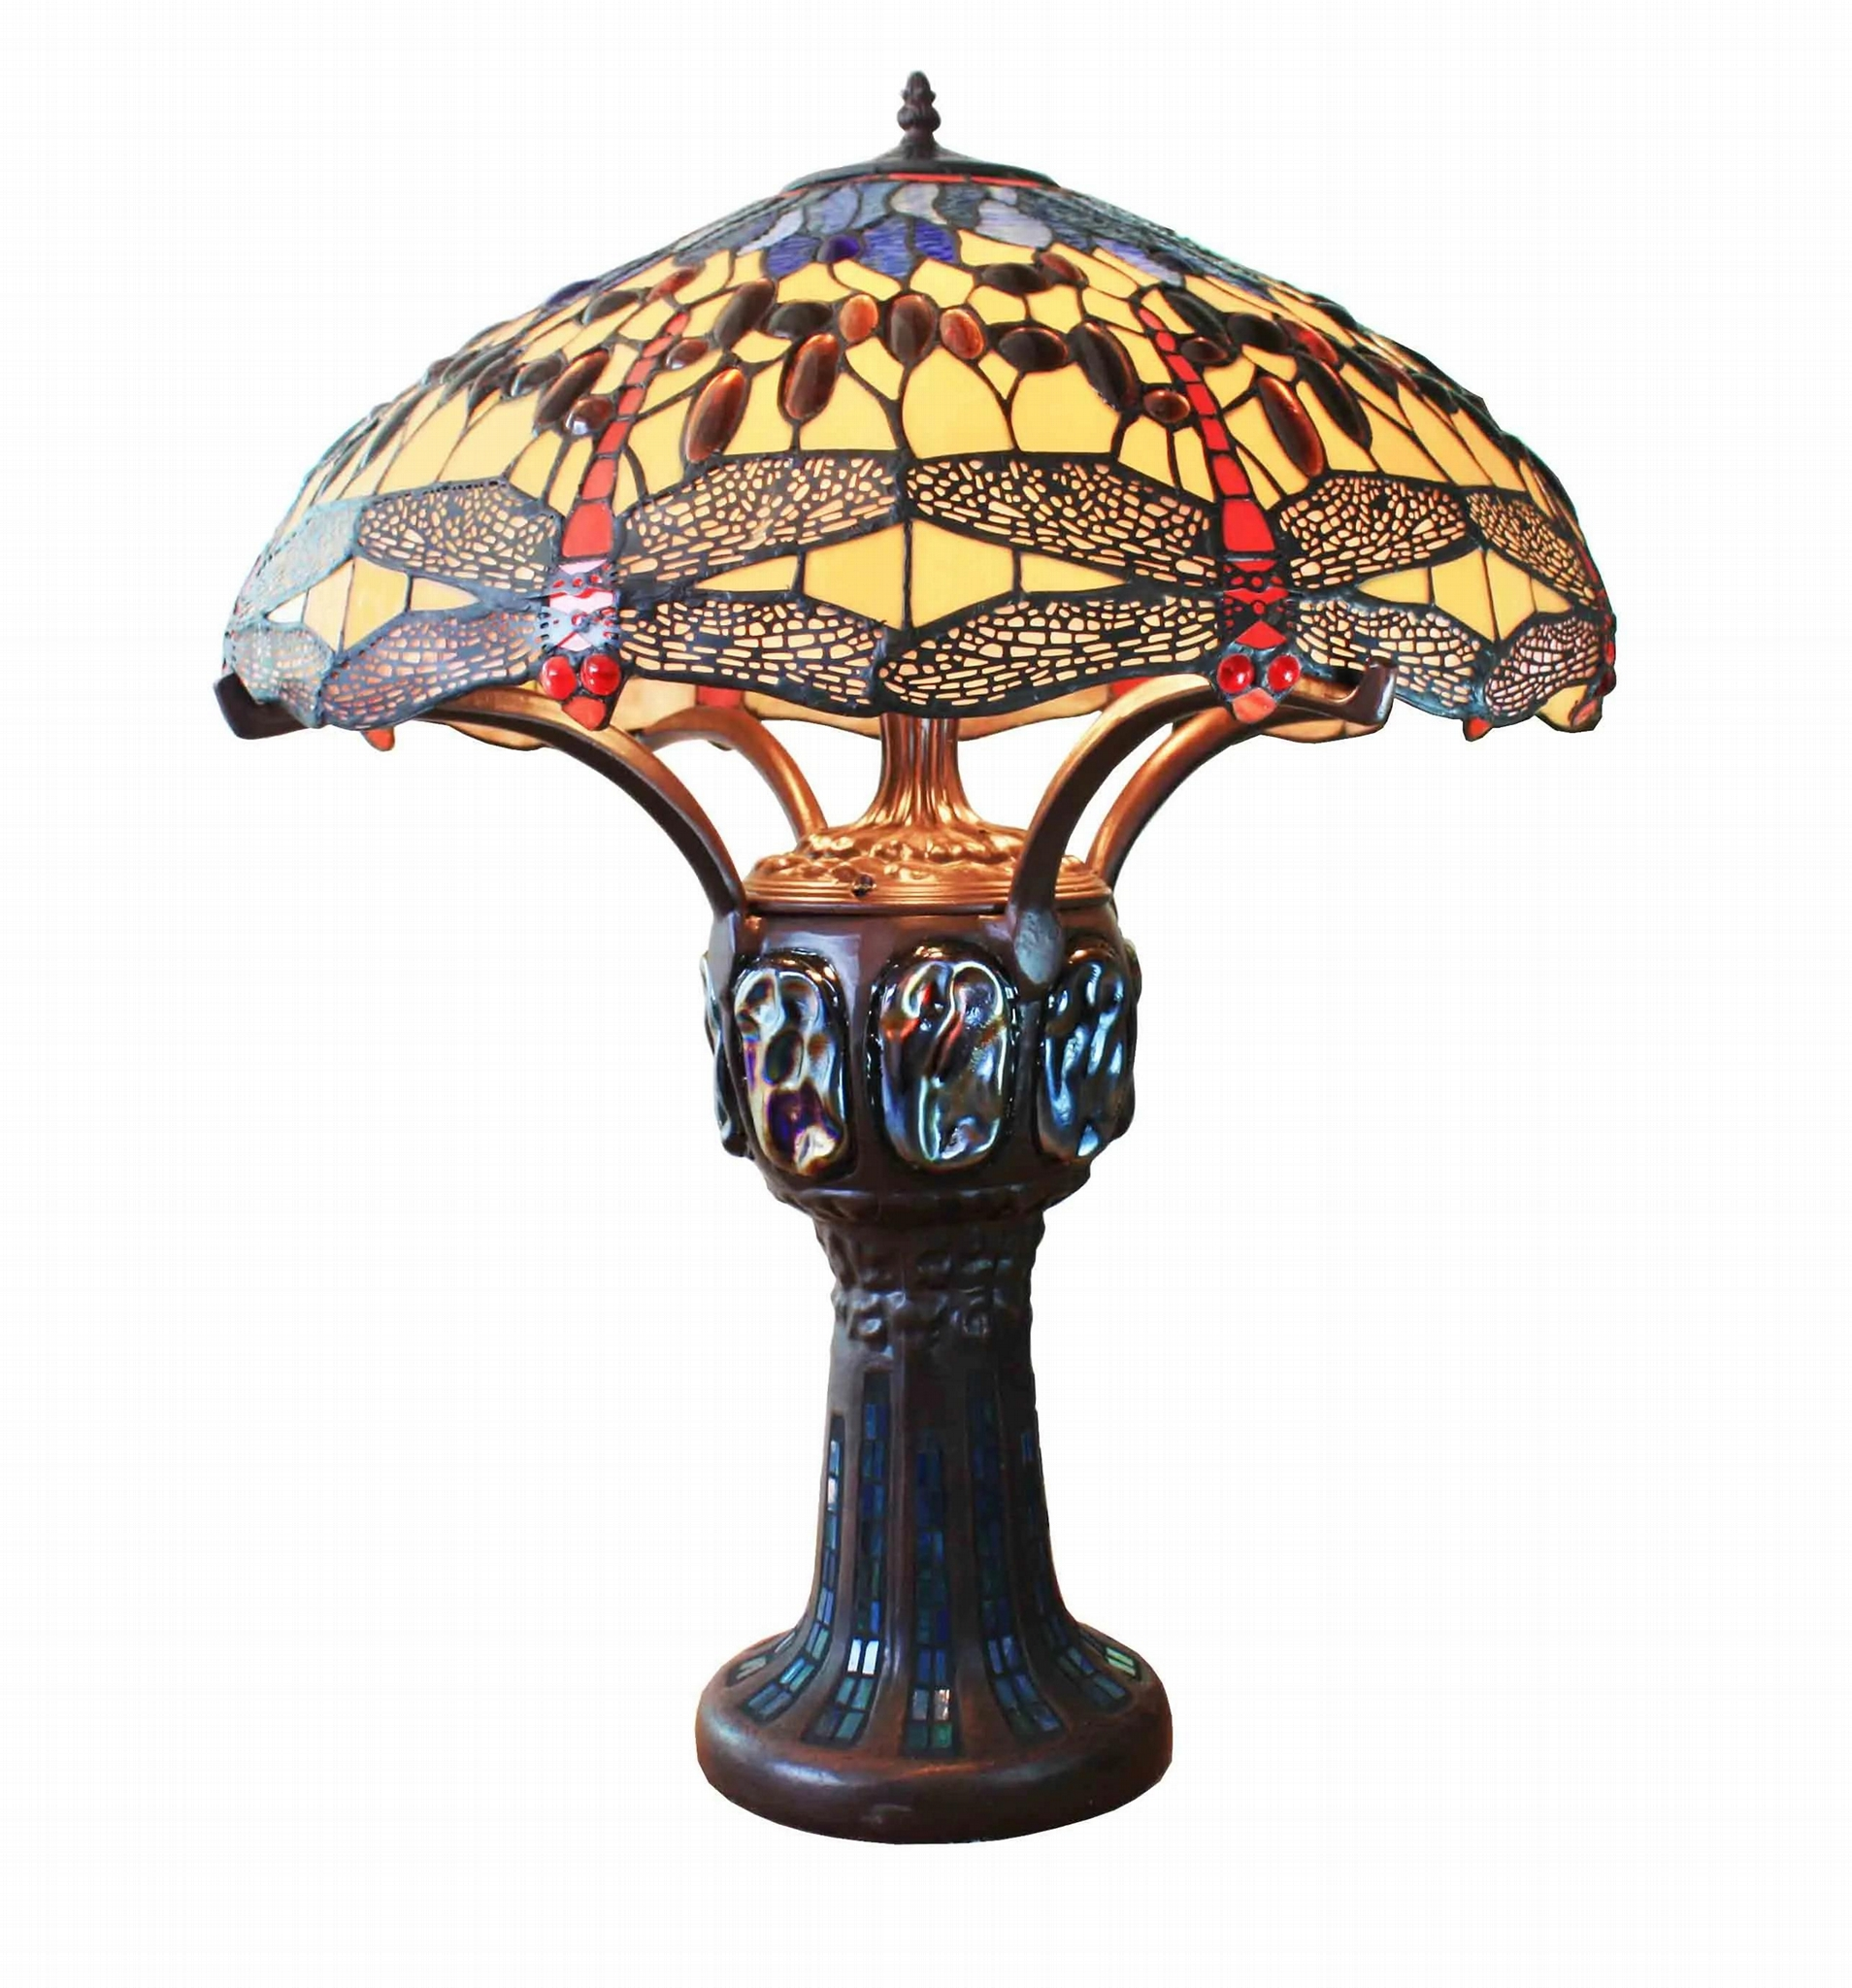 tiffany lamp(table lamp) 5